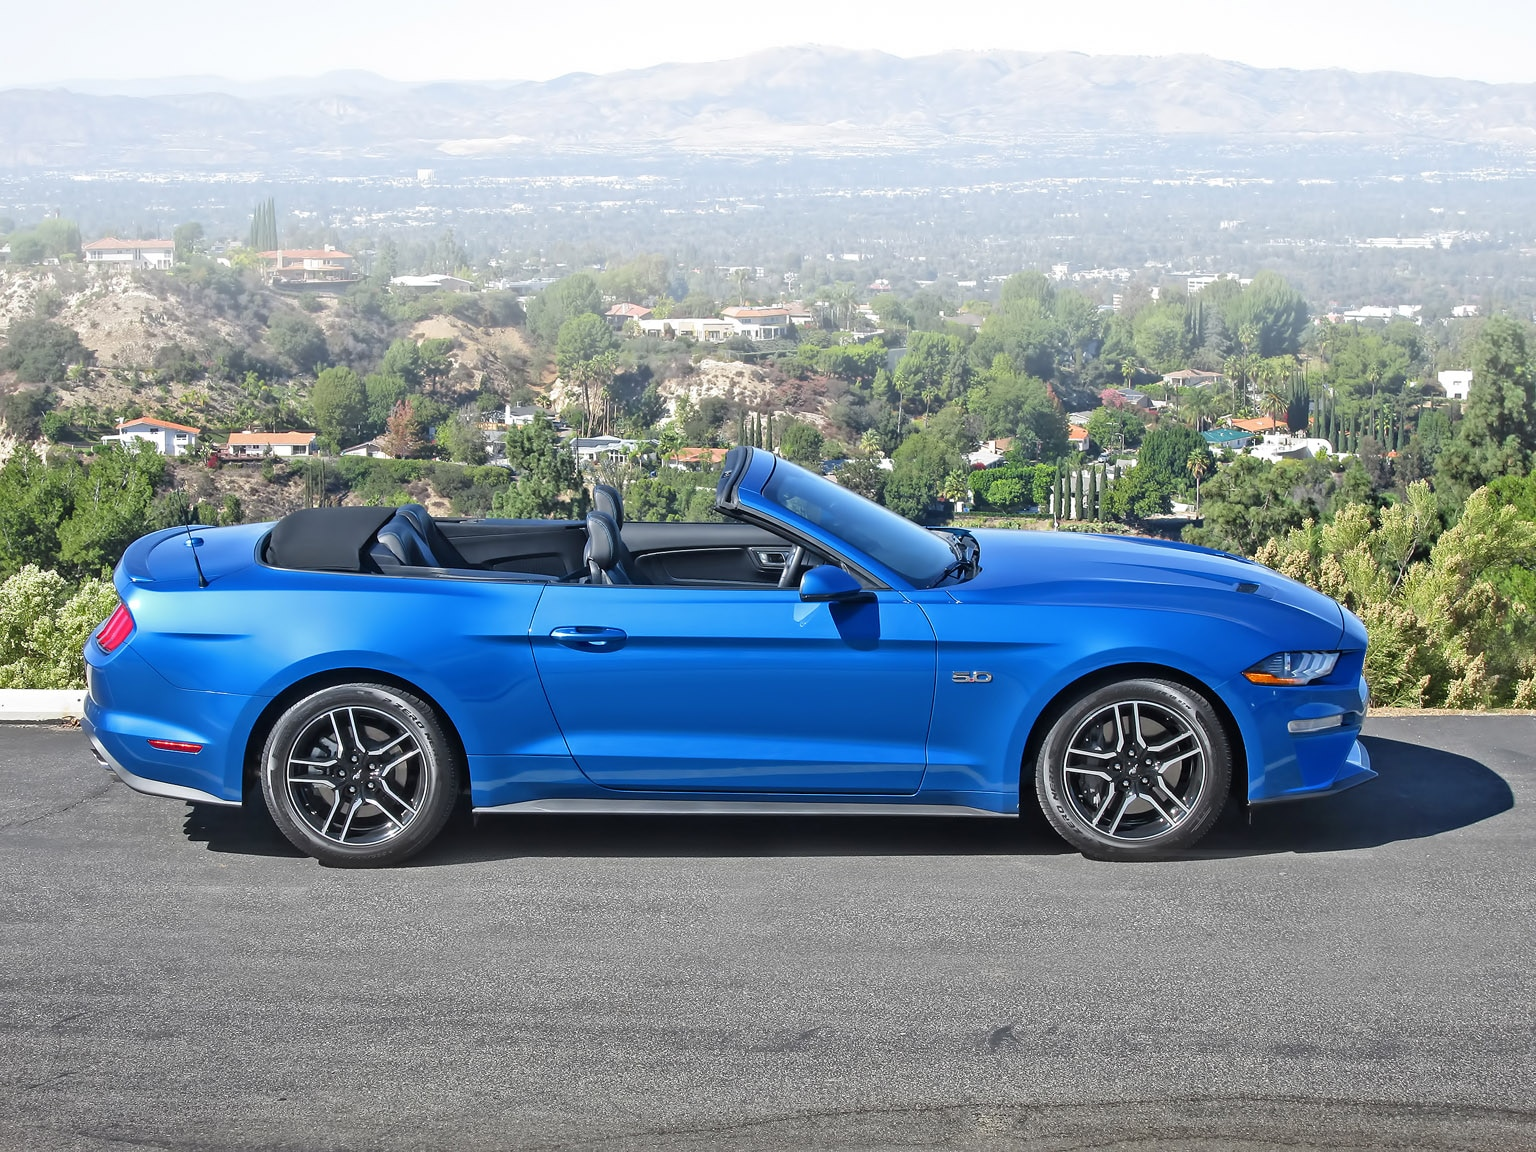 One Week With: 2019 Ford Mustang GT Convertible Premium | Automobile Magazine